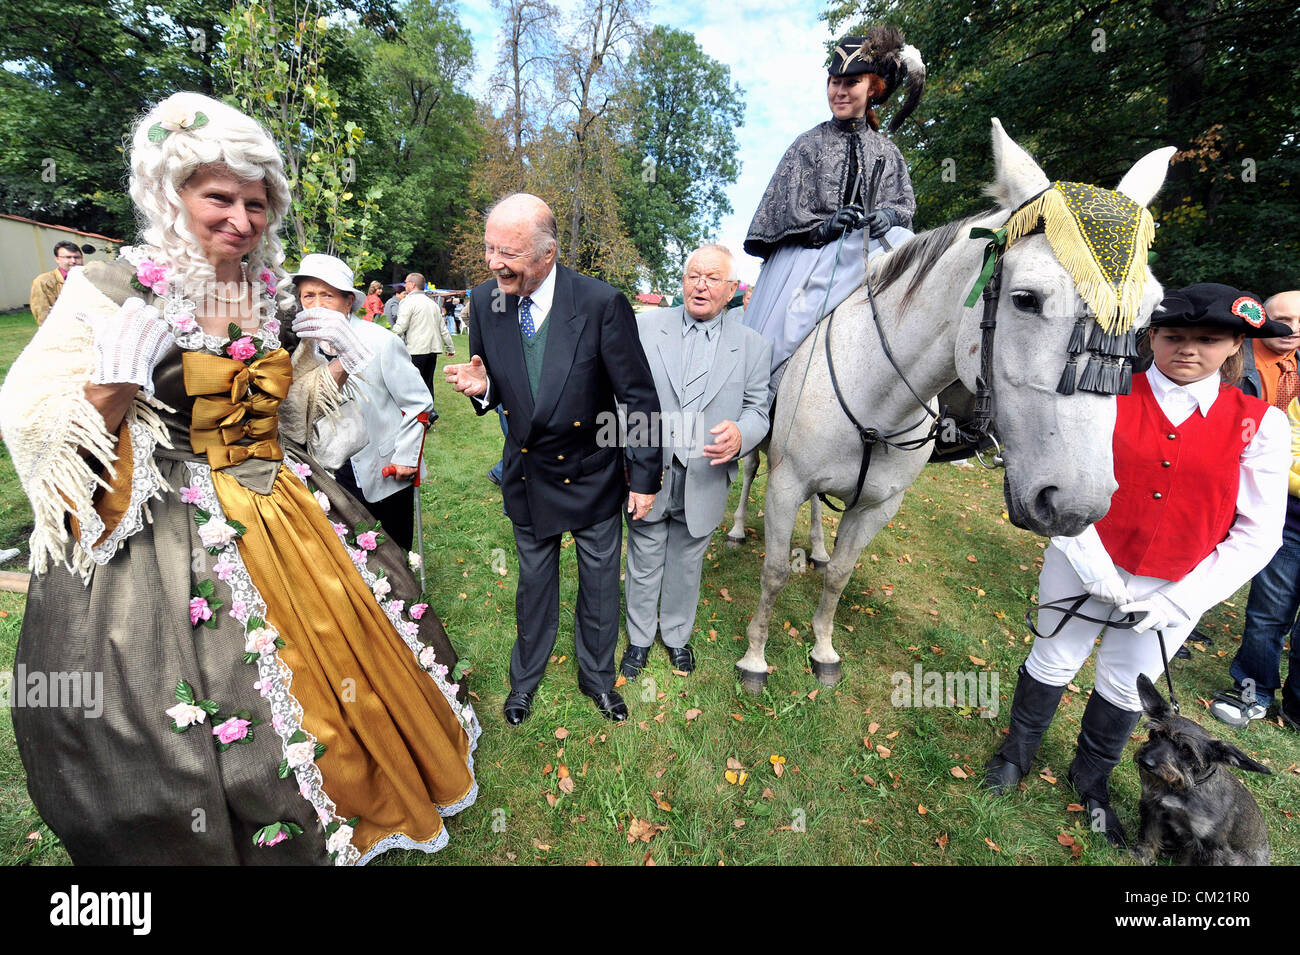 Pilgrimage and mass was held during the celebrations of the 250th anniversary of the birth of countess Mary Walburga - Stock Image